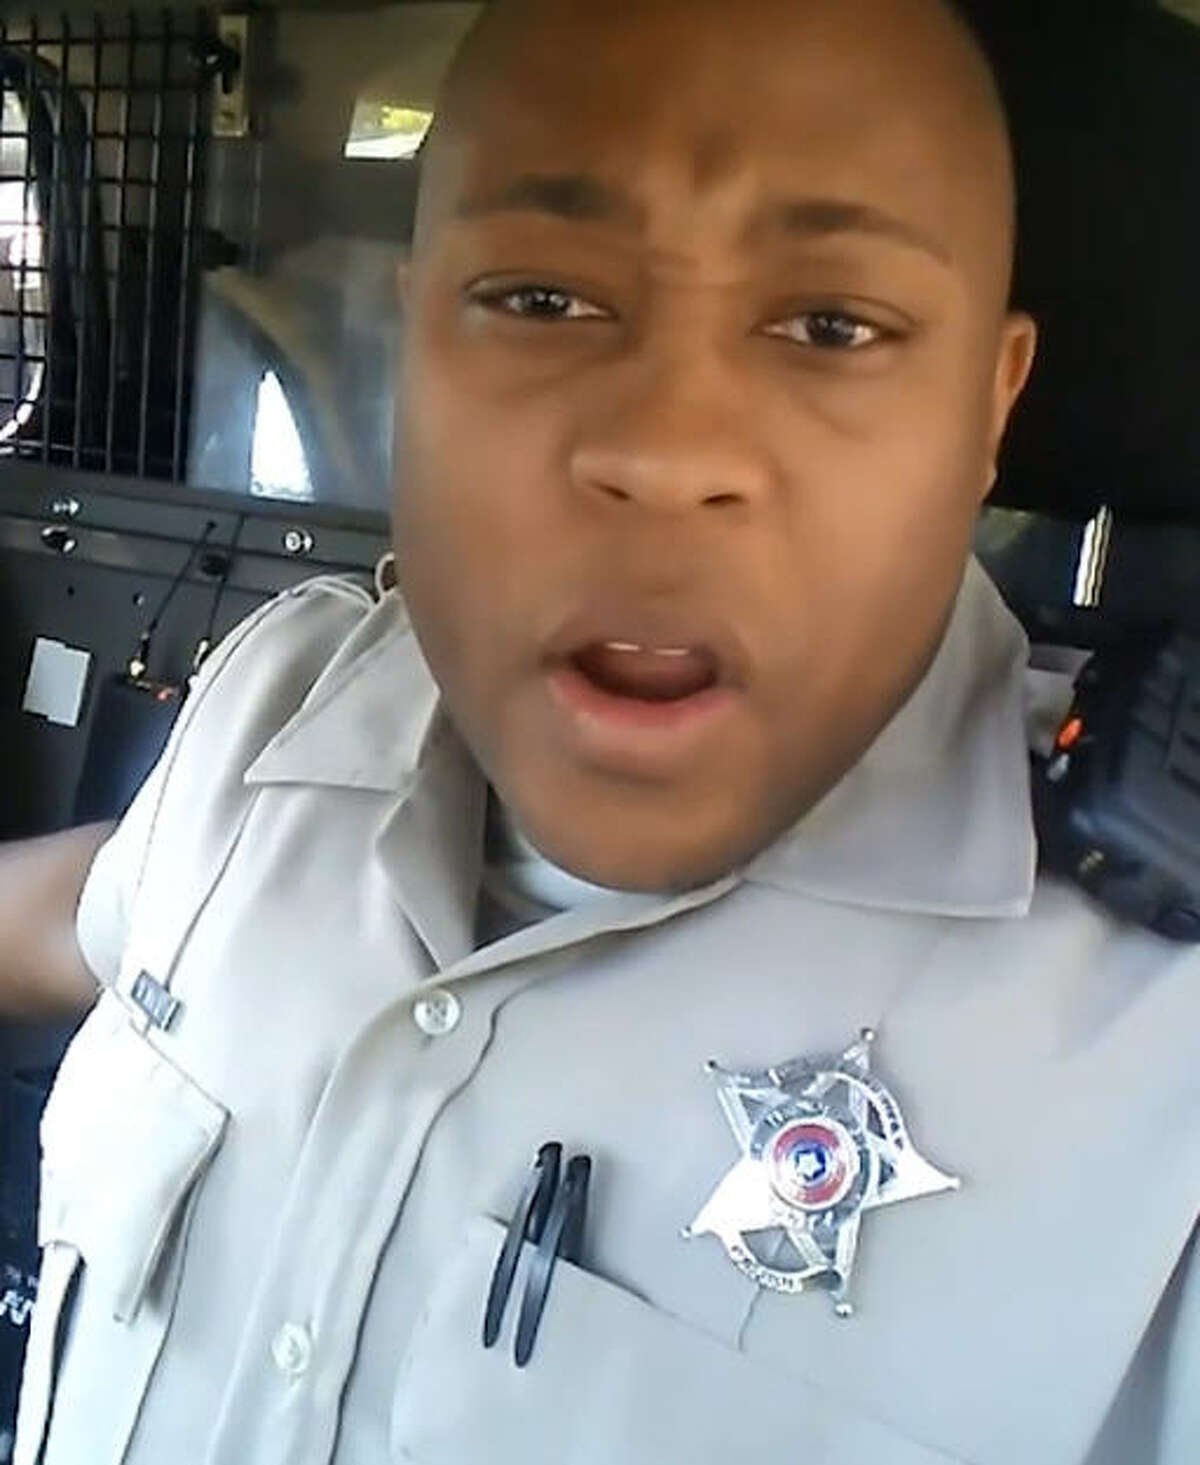 Keon Mack, a former deputy with the Henderson County Sheriff's Office in Texas, was let go after one of his comedy sketches went viral. Mack is looking to build upon his comedic skills and break into acting.